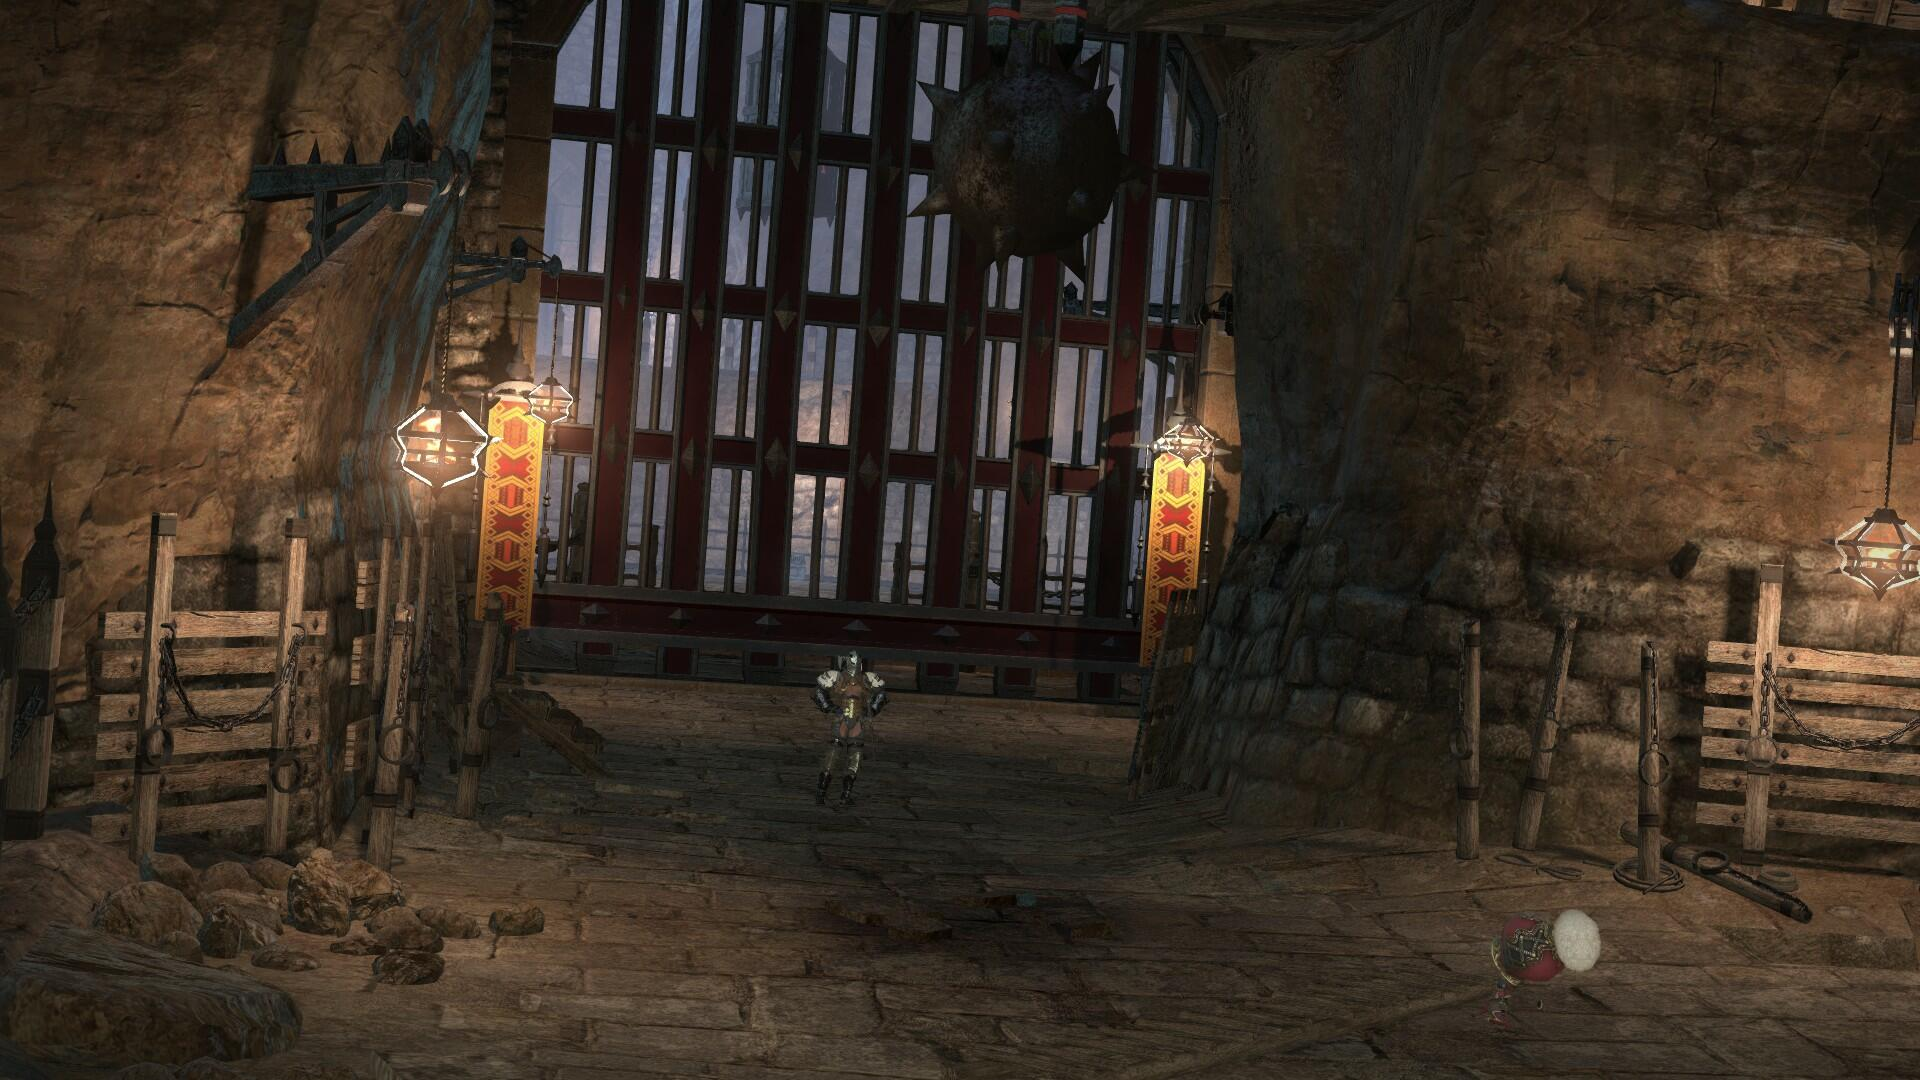 Final Fantasy XIV Guide: Complete Walkthrough for the Endgame Dungeons